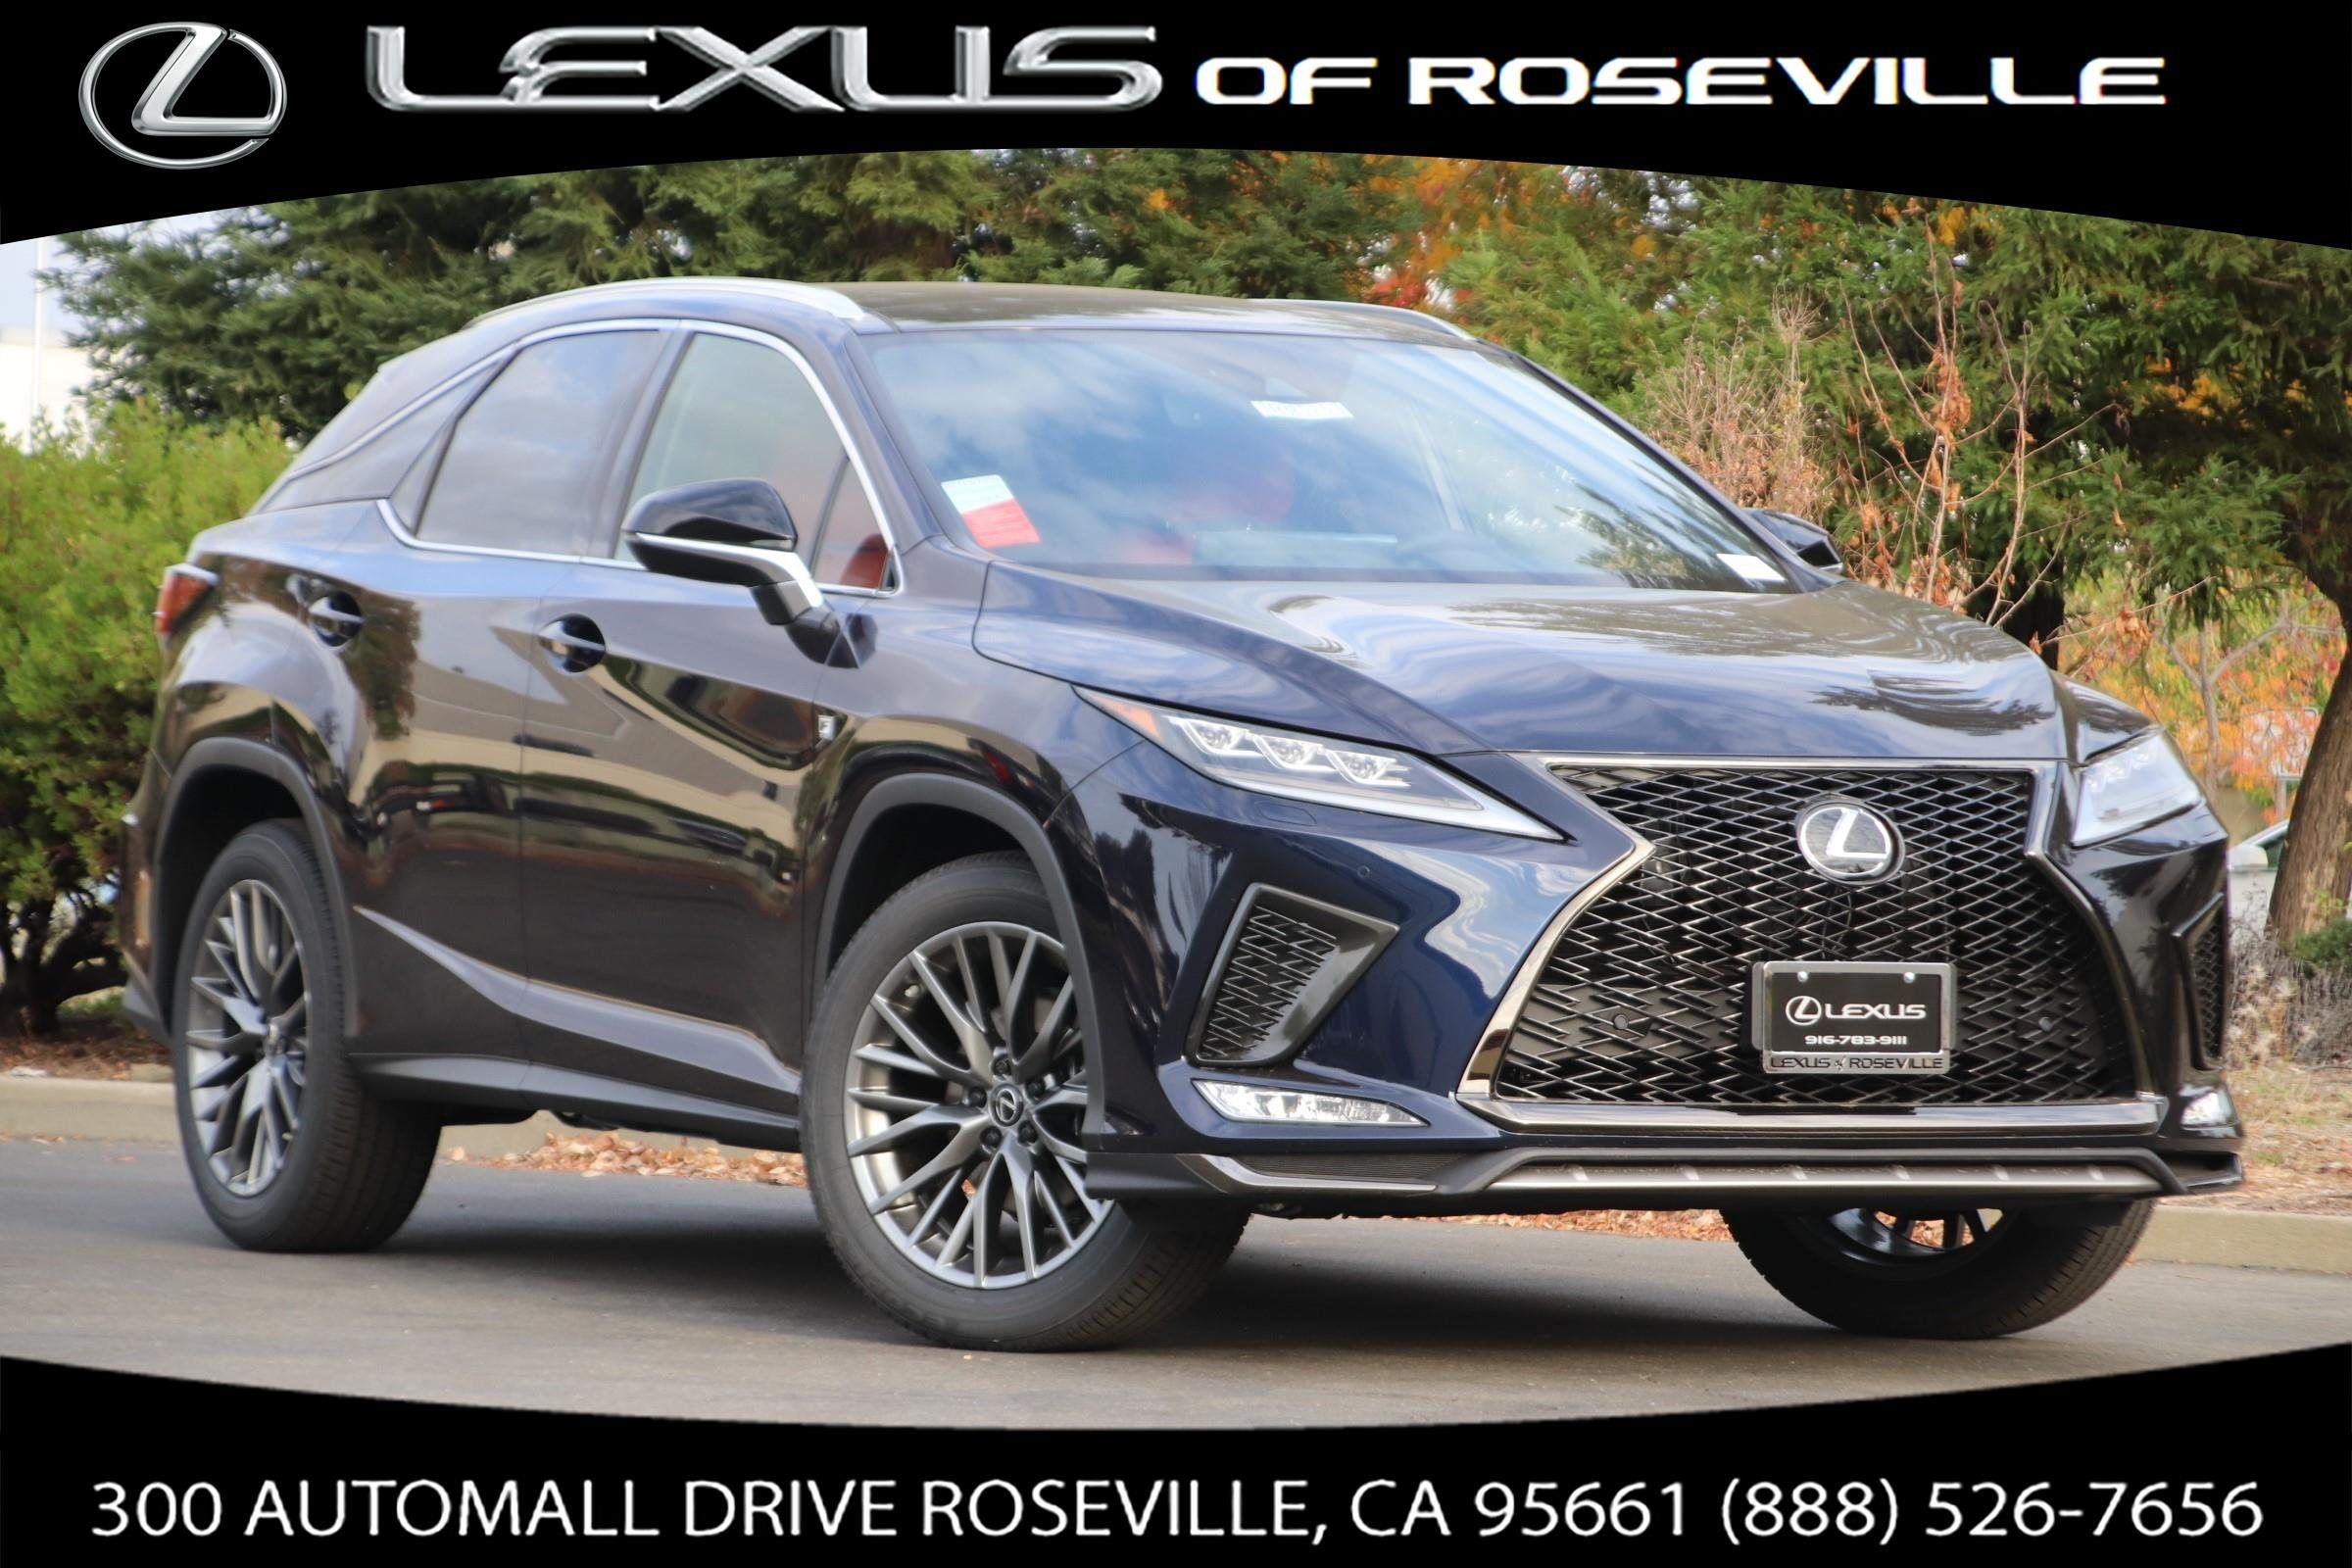 2020 Lexus Rx 350 F Sport Suv Engine in 2020 (With images